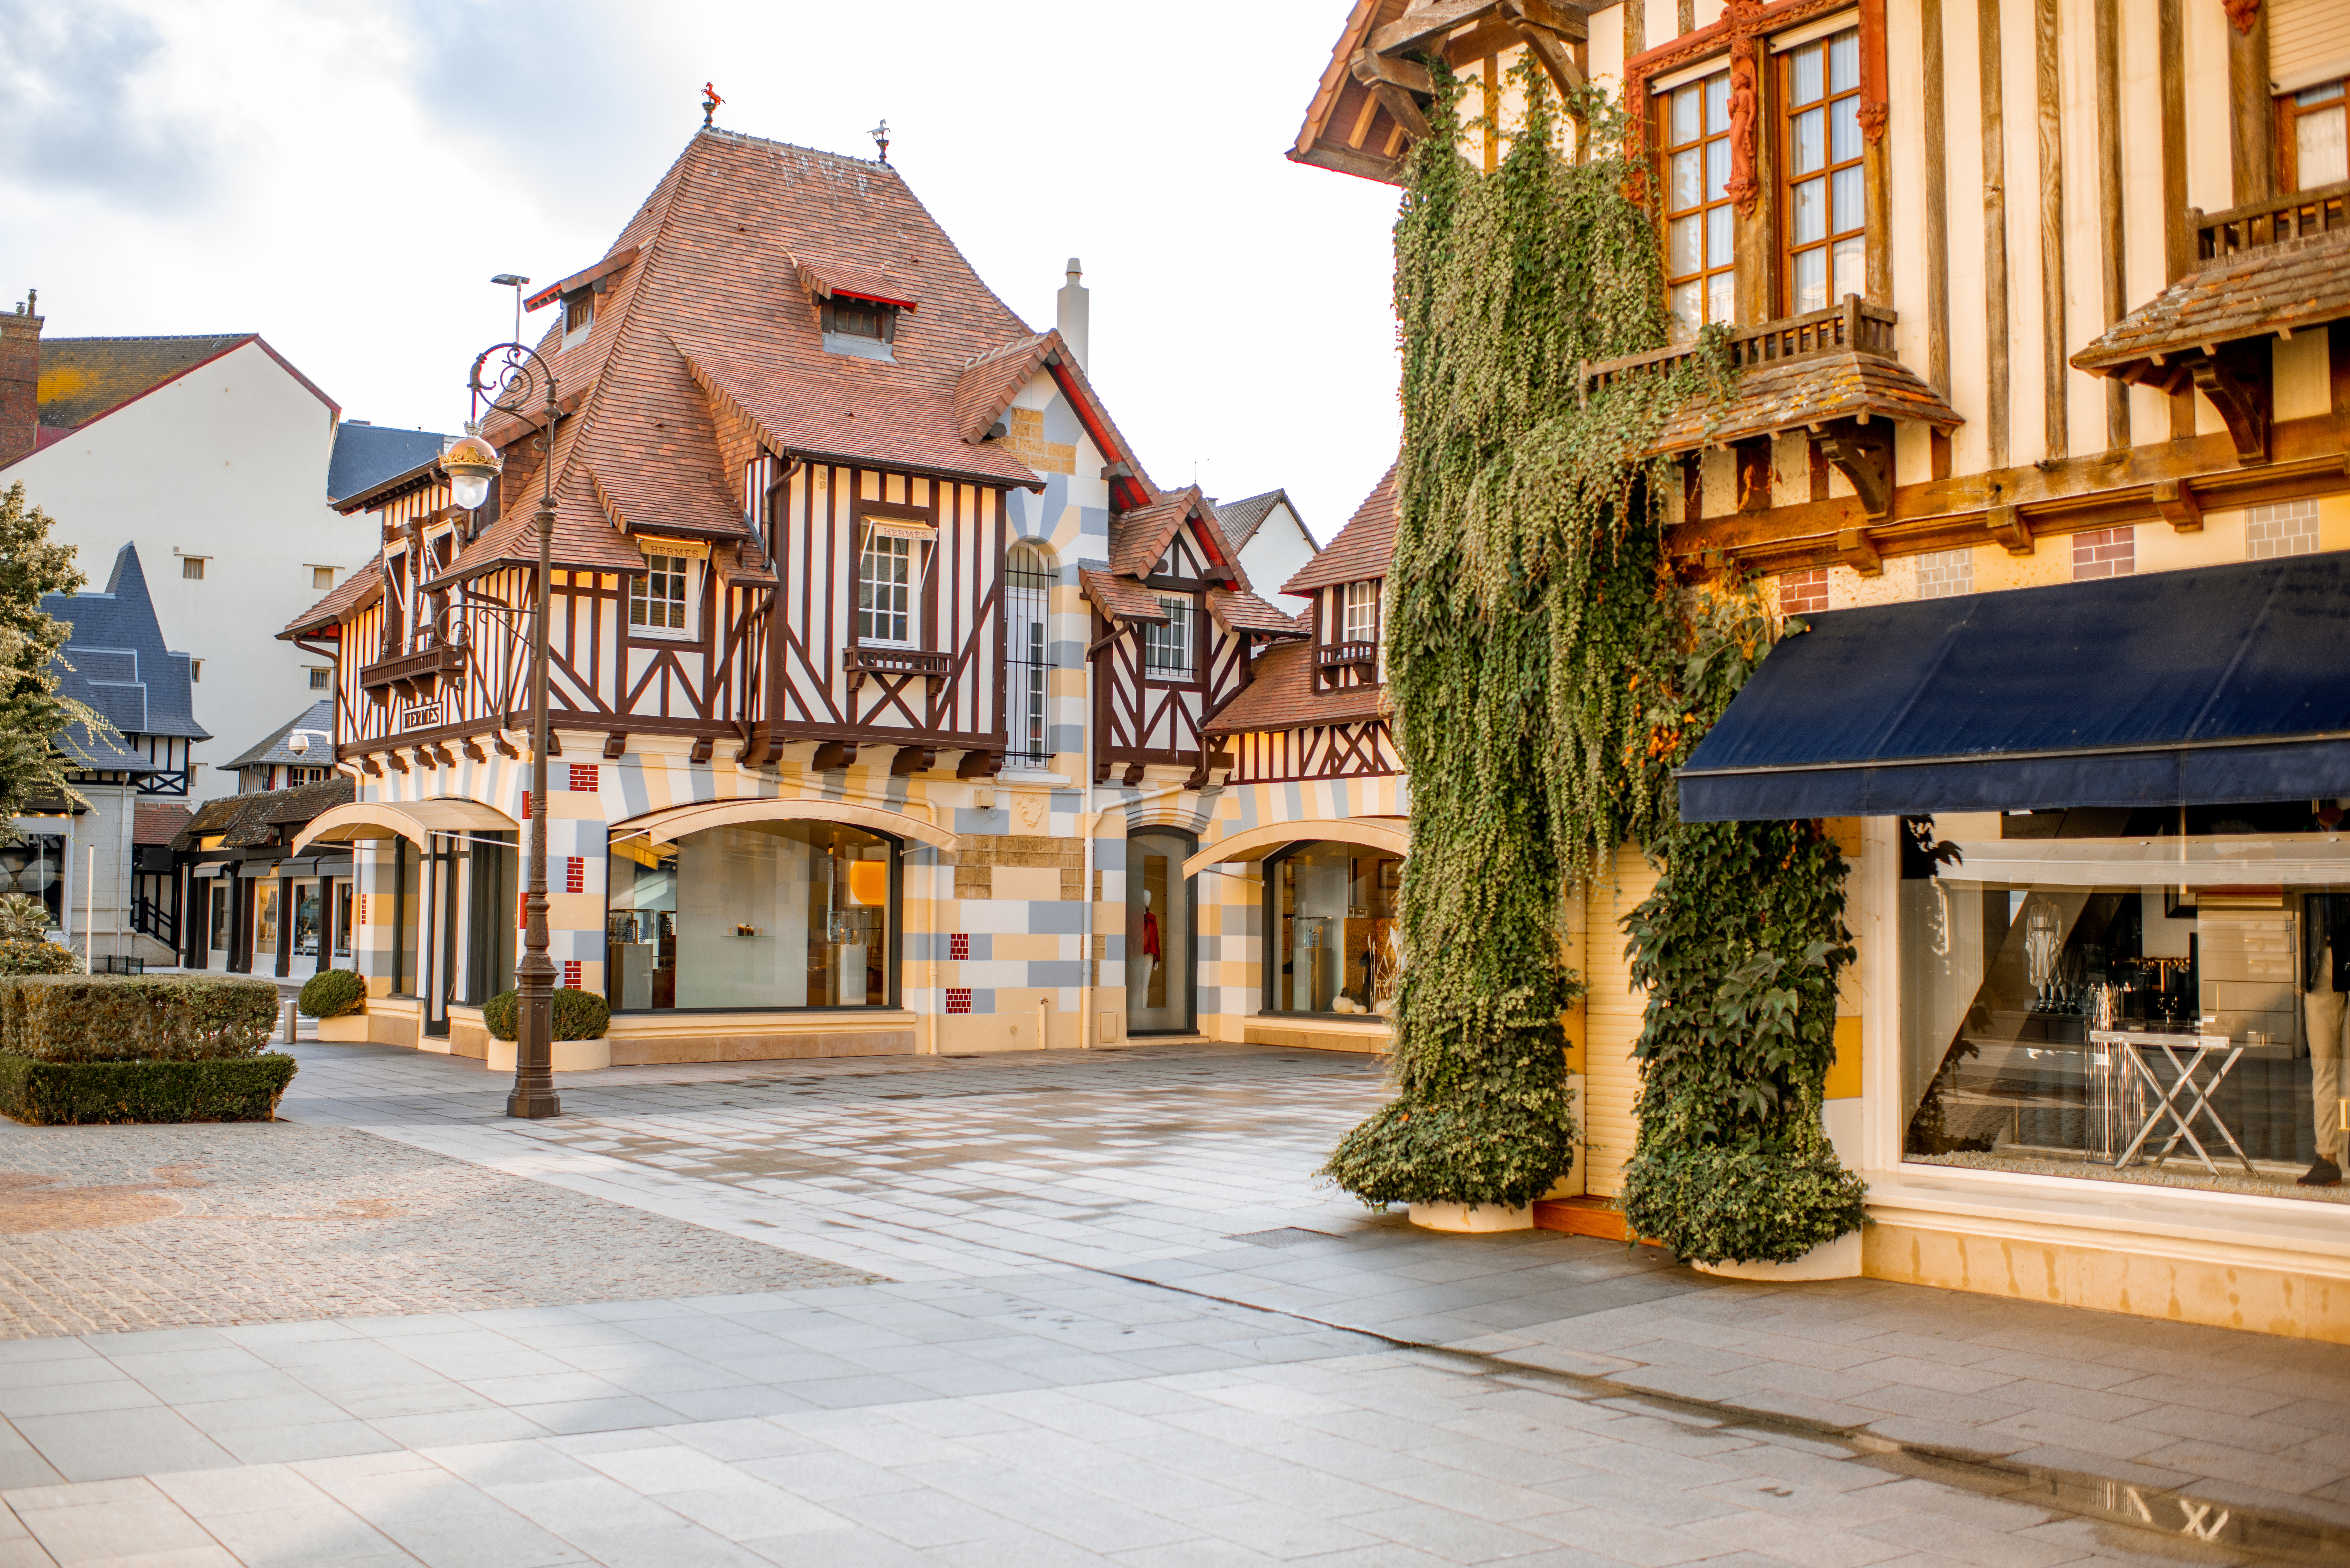 Deauville, a French seaside town in Normandy